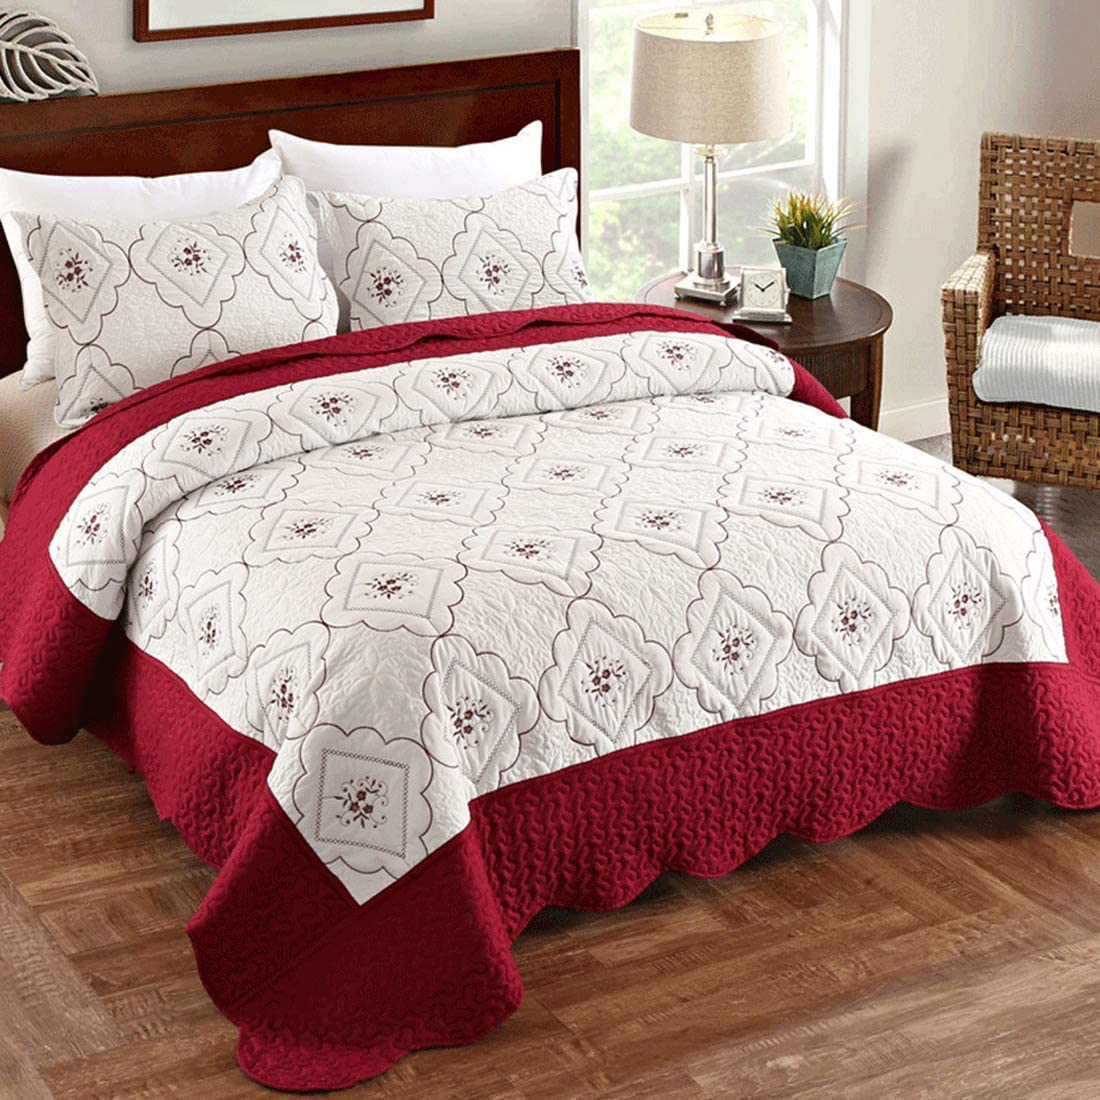 2 Piece Embroidered Quilt Blanket Bed Spread Color Choice Twin Size